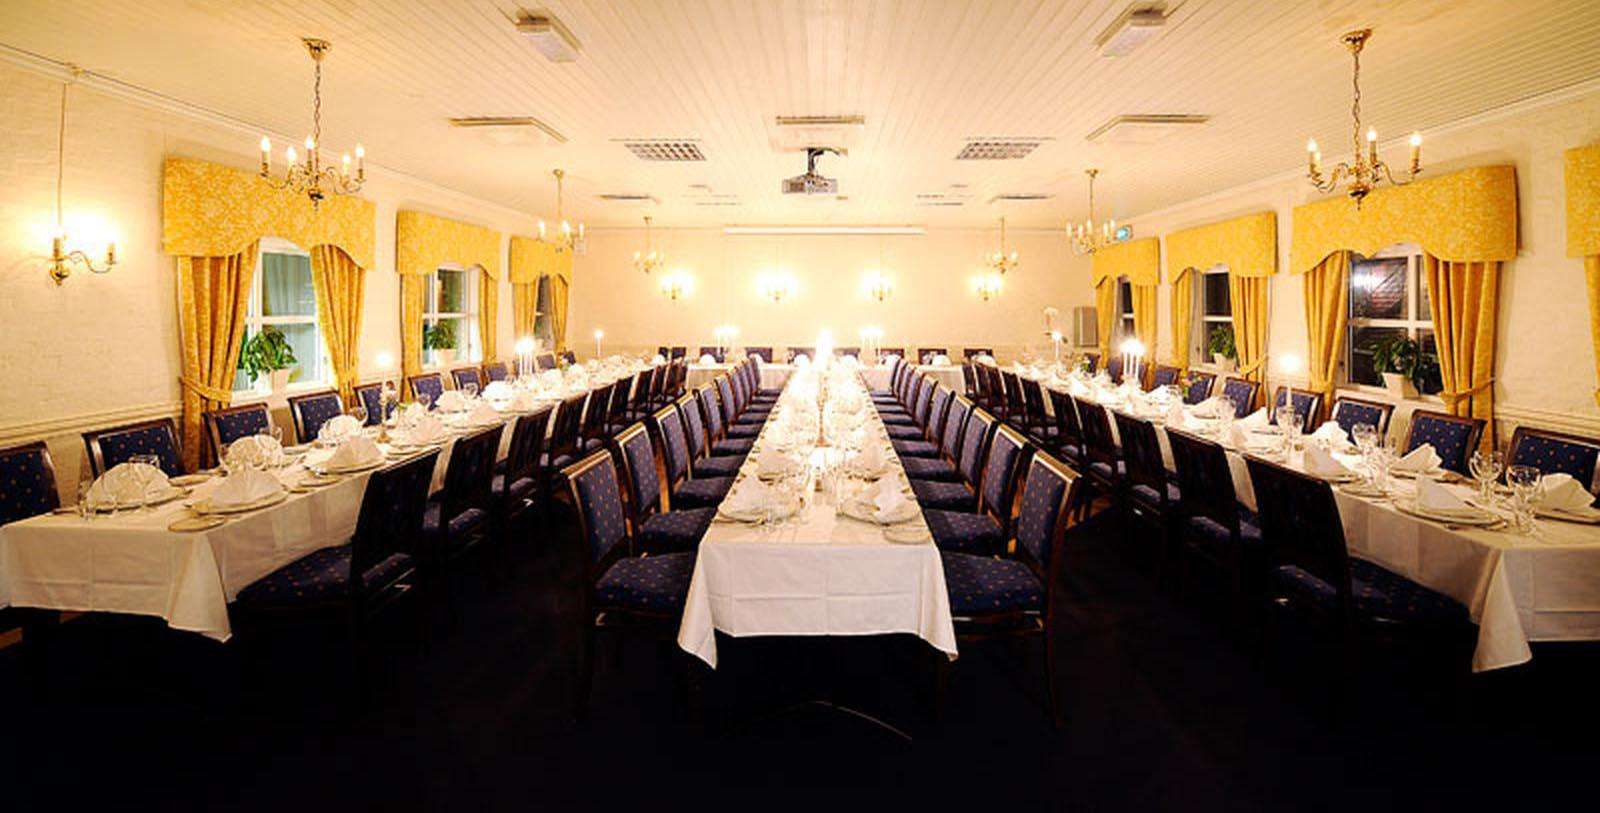 Image of Event Space Kronen Gaard Hotel, 1898, Member of Historic Hotels Worldwide, in Sandnes, Norway, Experience